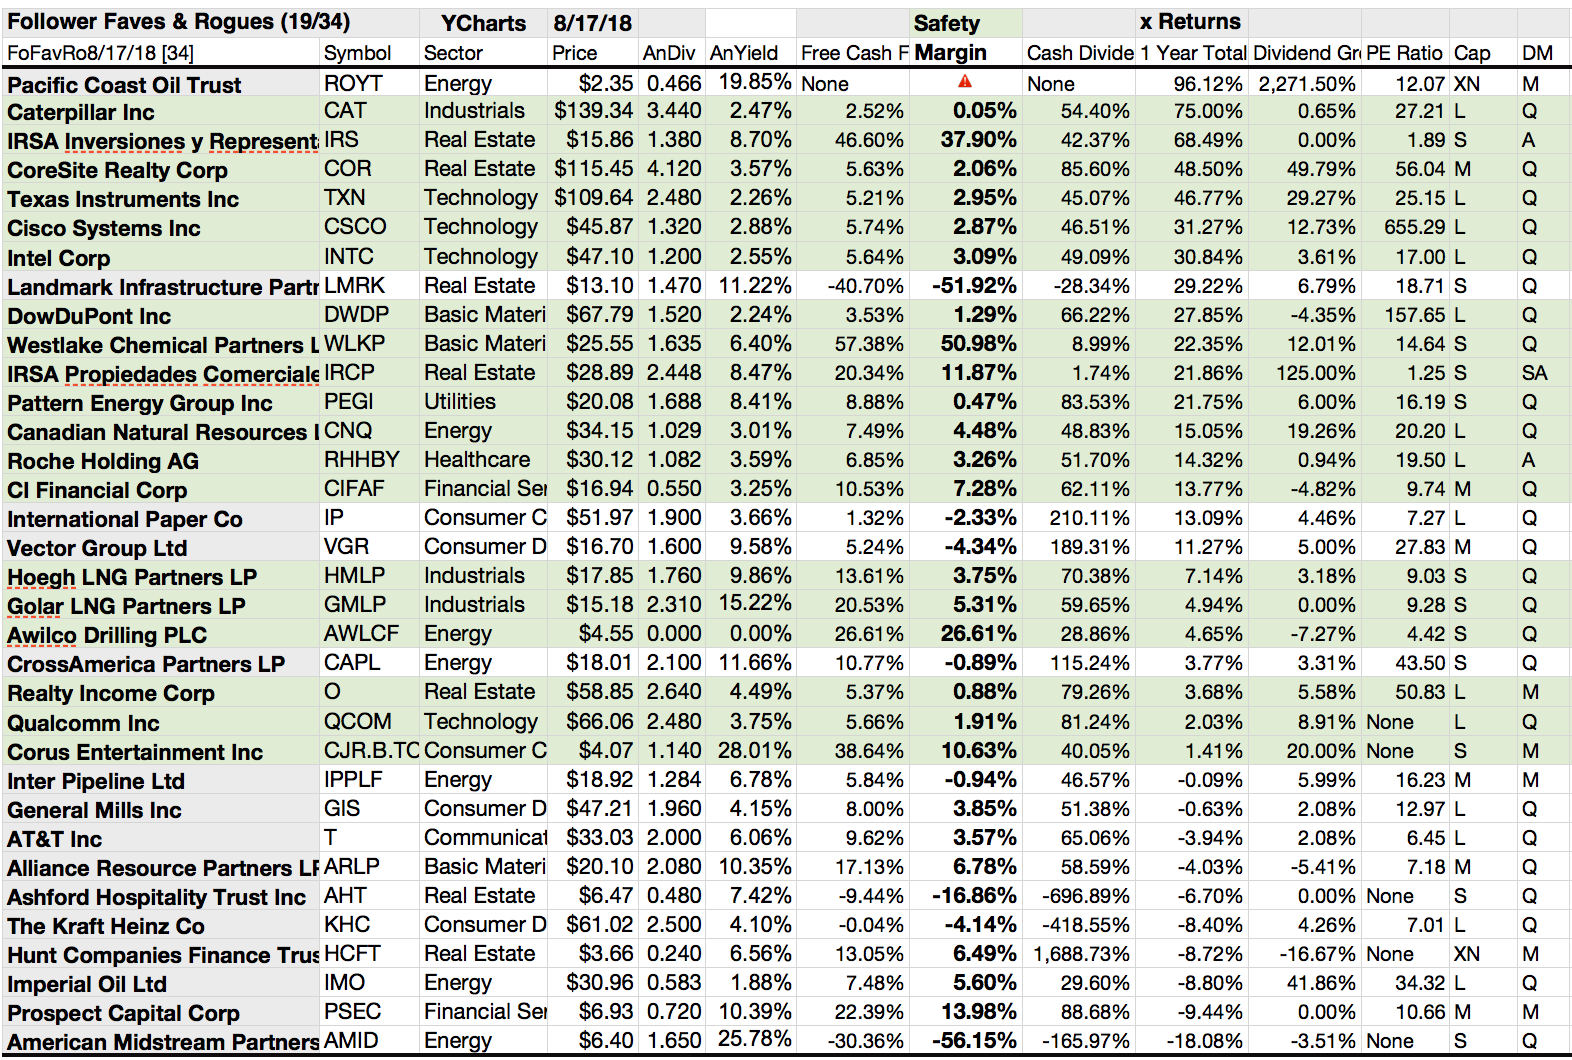 Readers Mentioned 19 'Safer' Dividend Stocks In Your July/August Comments